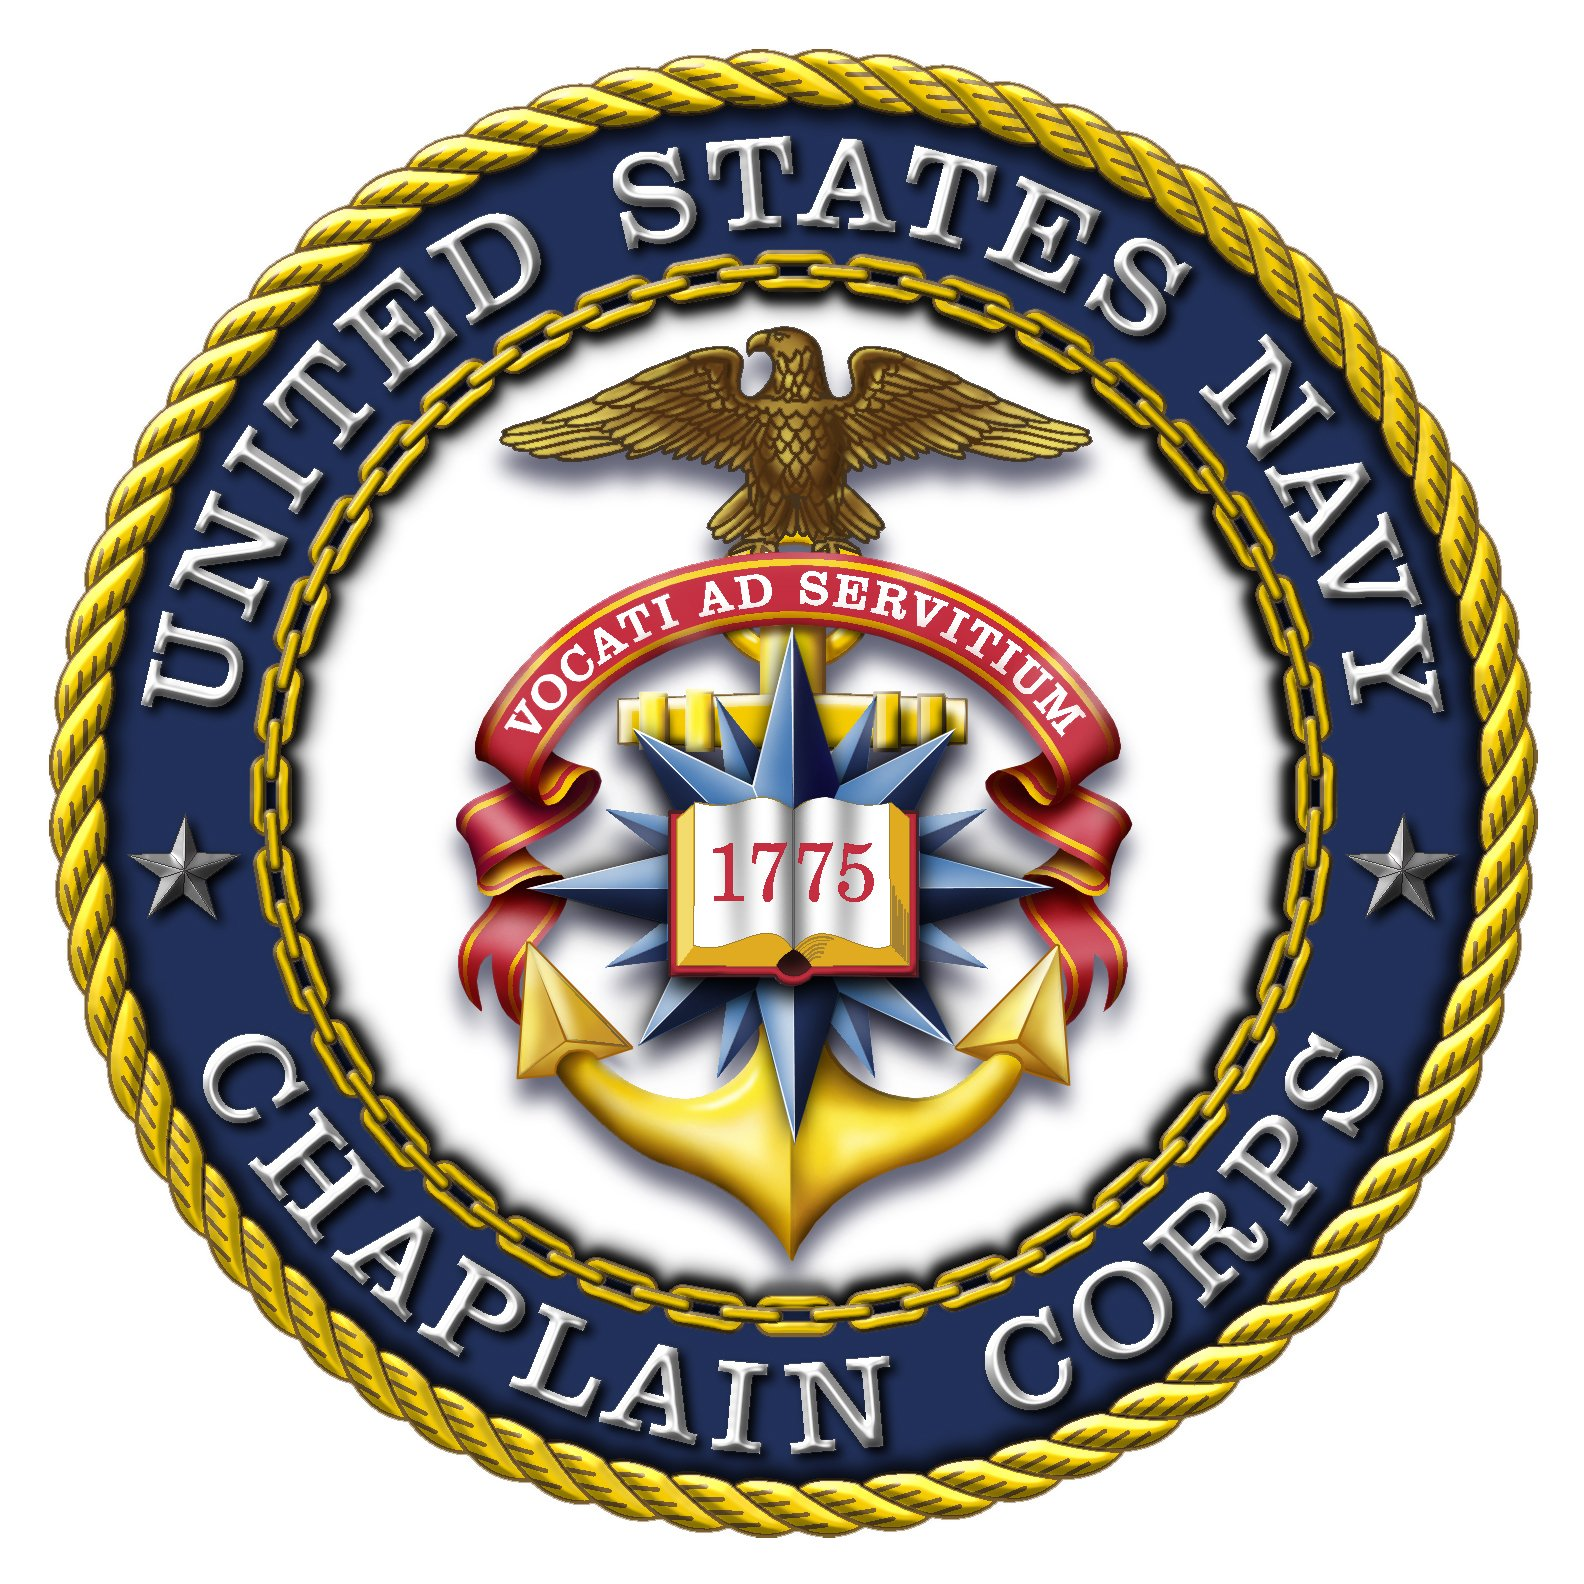 file us navy chaplain corps seal wikimedia commons. Black Bedroom Furniture Sets. Home Design Ideas